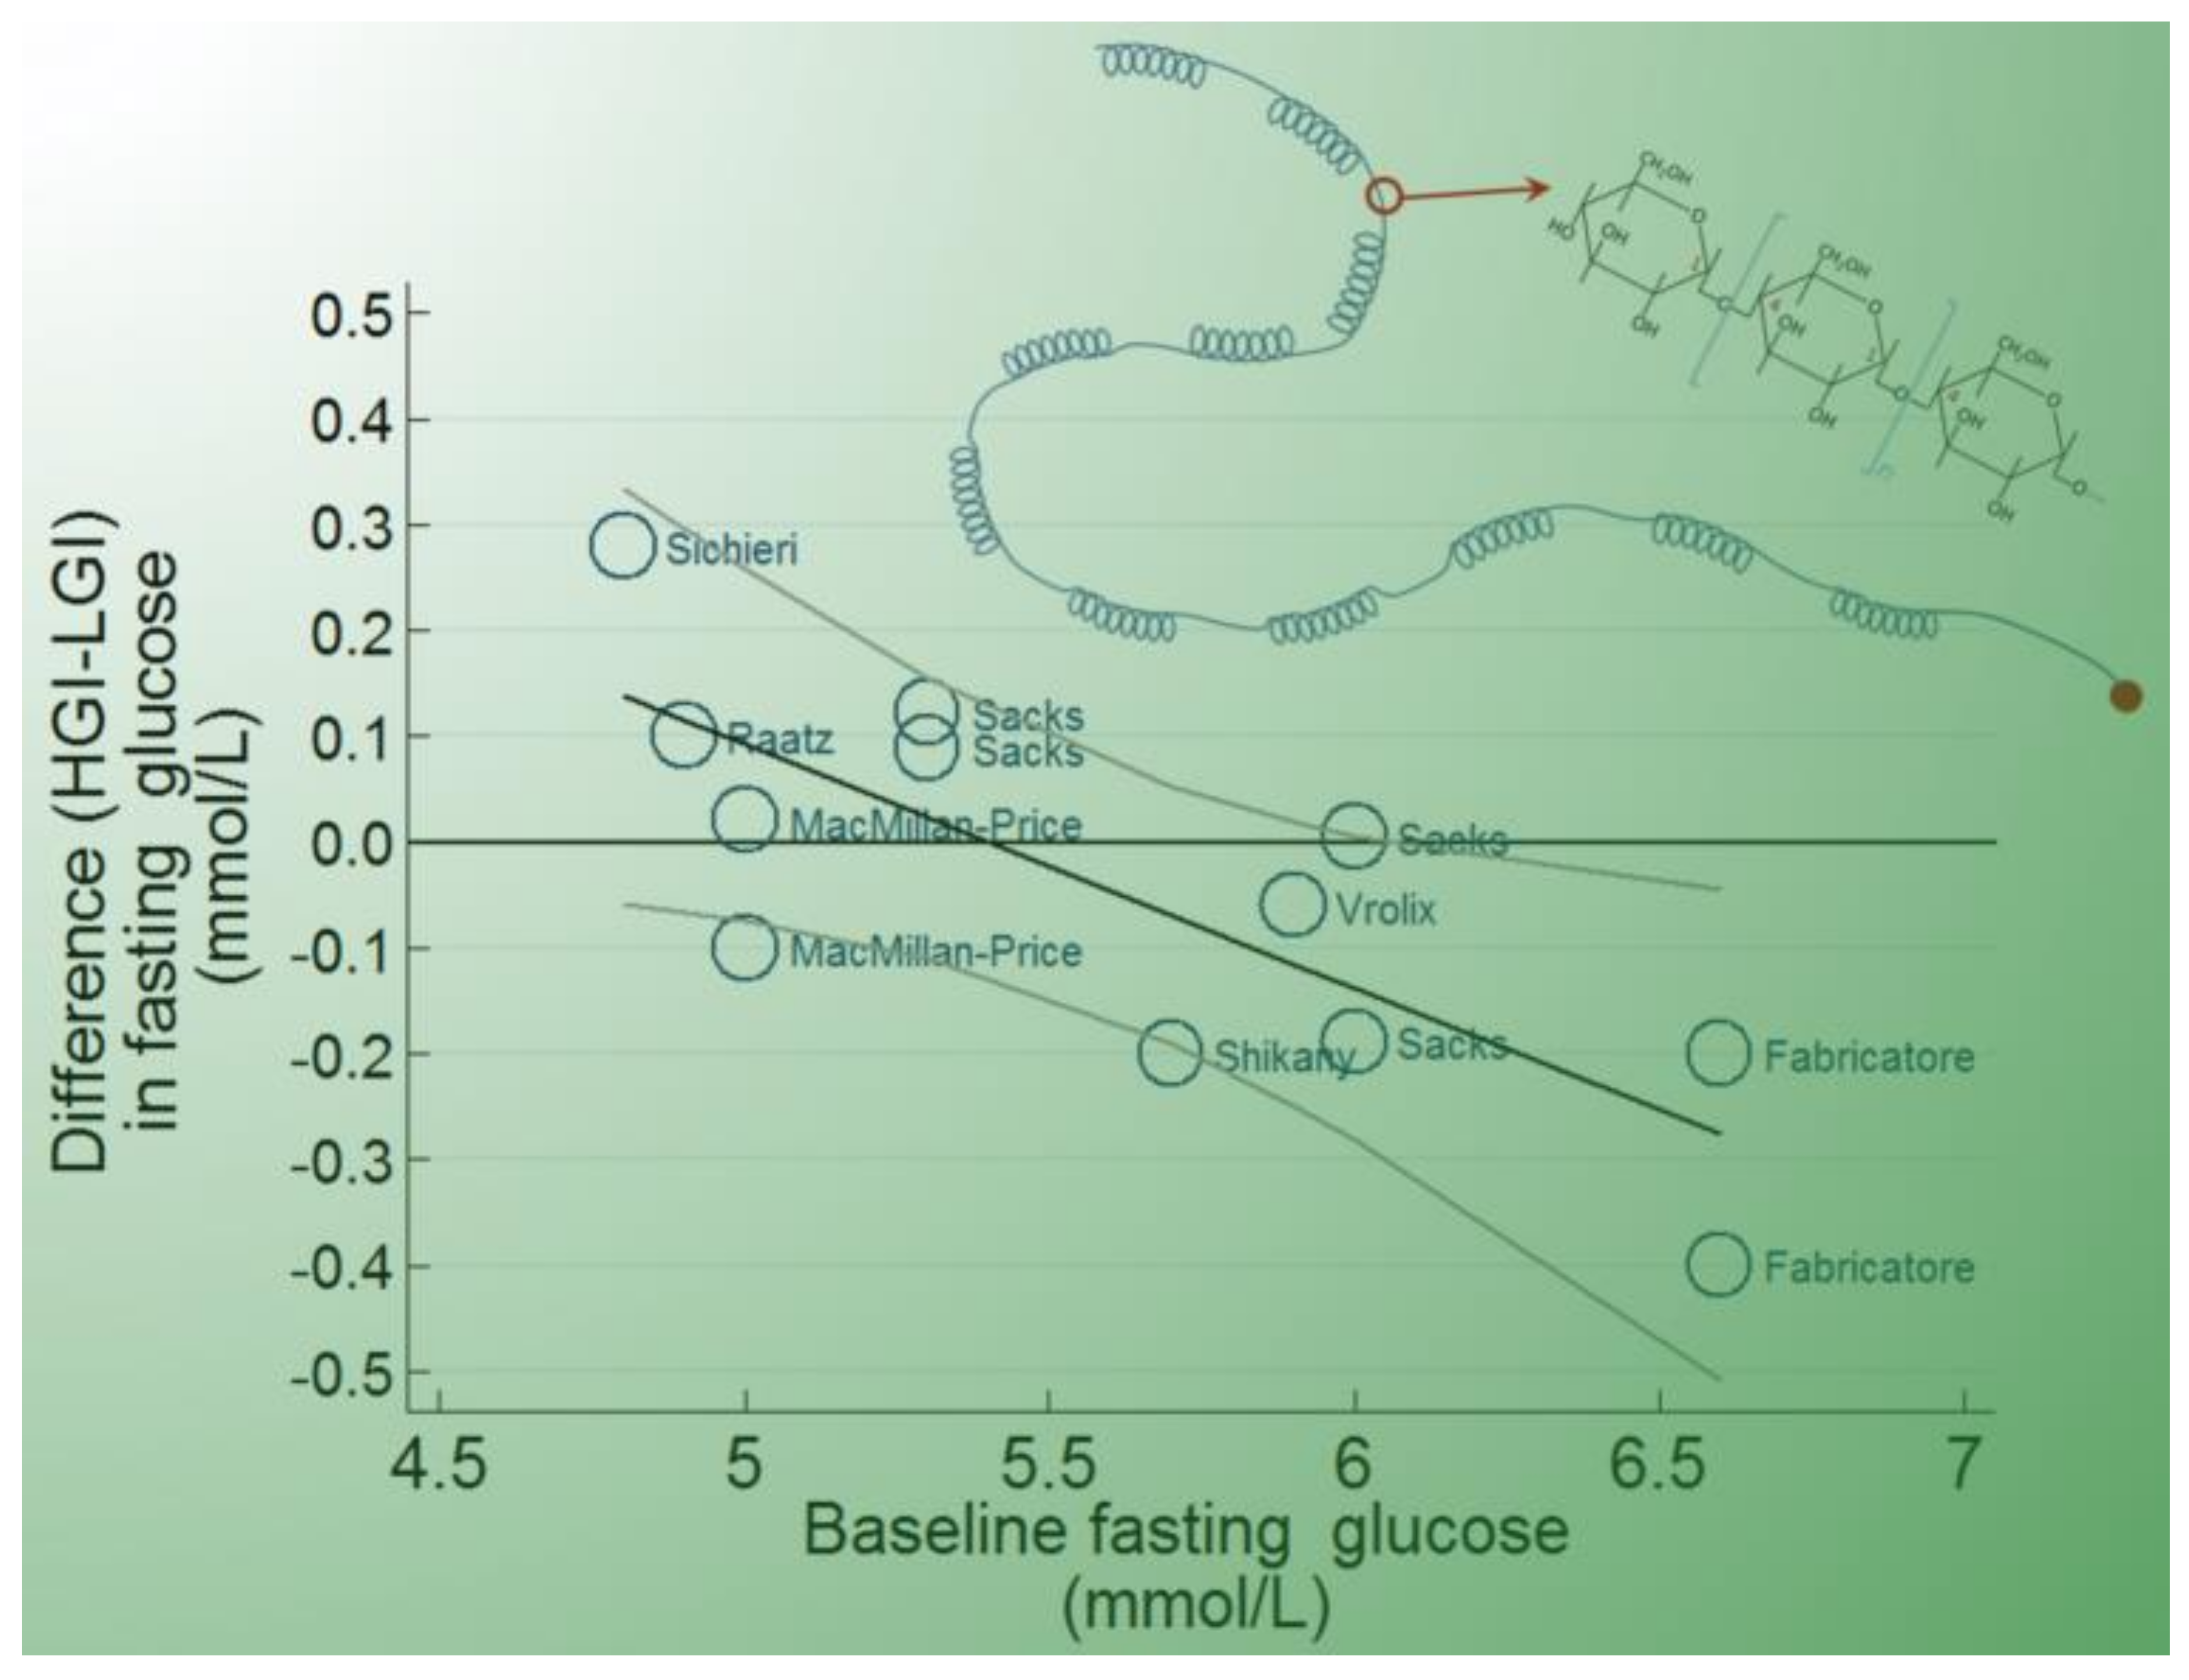 Nutrients | Free Full-Text | Dietary Glycemic Index and Load and the